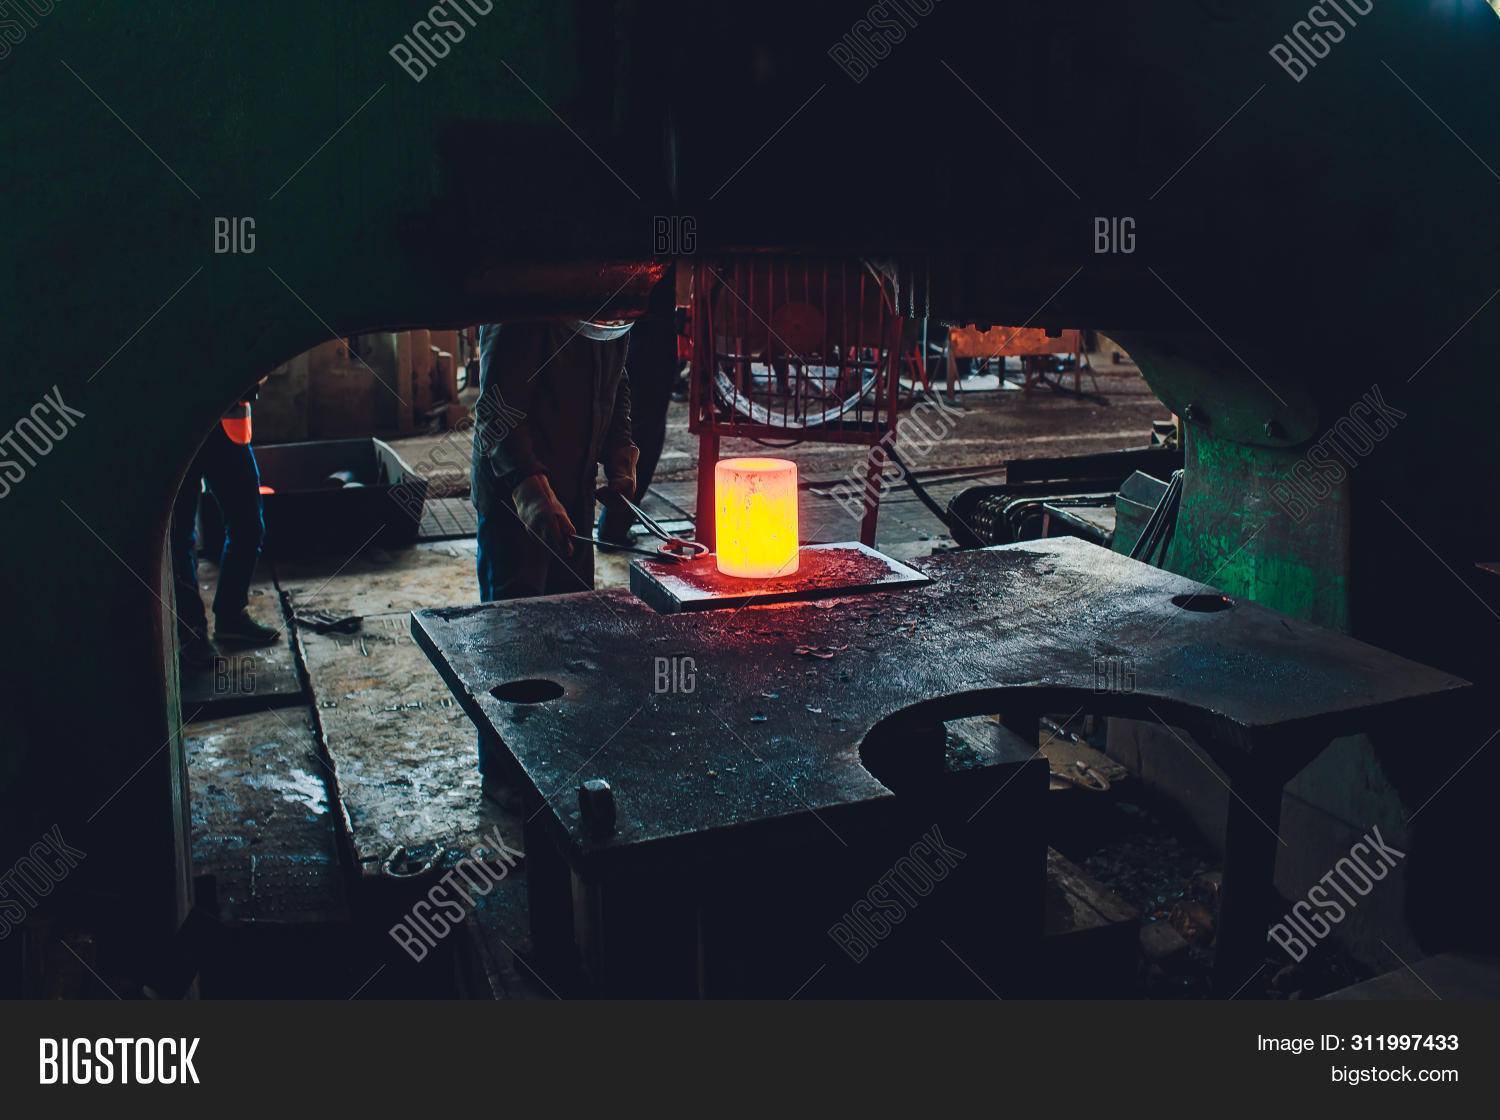 The Process Of Forging Metal In The Production Of Heavy Molded Metal Products. Blacksmithing. Patter